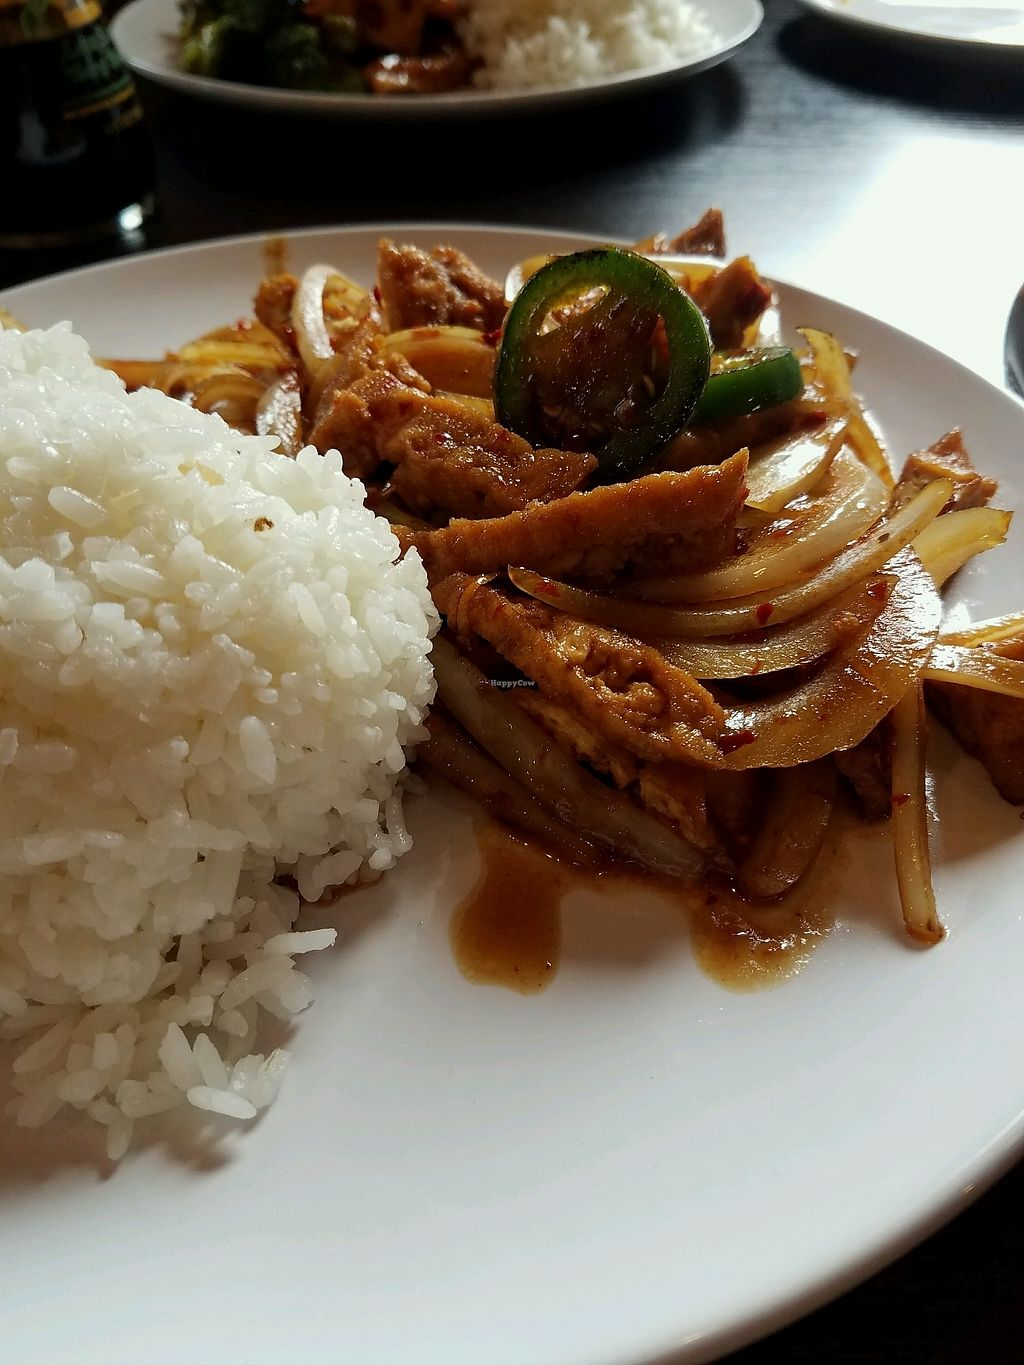 """Photo of Z's Asian Bistro  by <a href=""""/members/profile/Silly%20Little%20Vegan"""">Silly Little Vegan</a> <br/>Hot pepper tofu  <br/> March 11, 2018  - <a href='/contact/abuse/image/114265/369393'>Report</a>"""